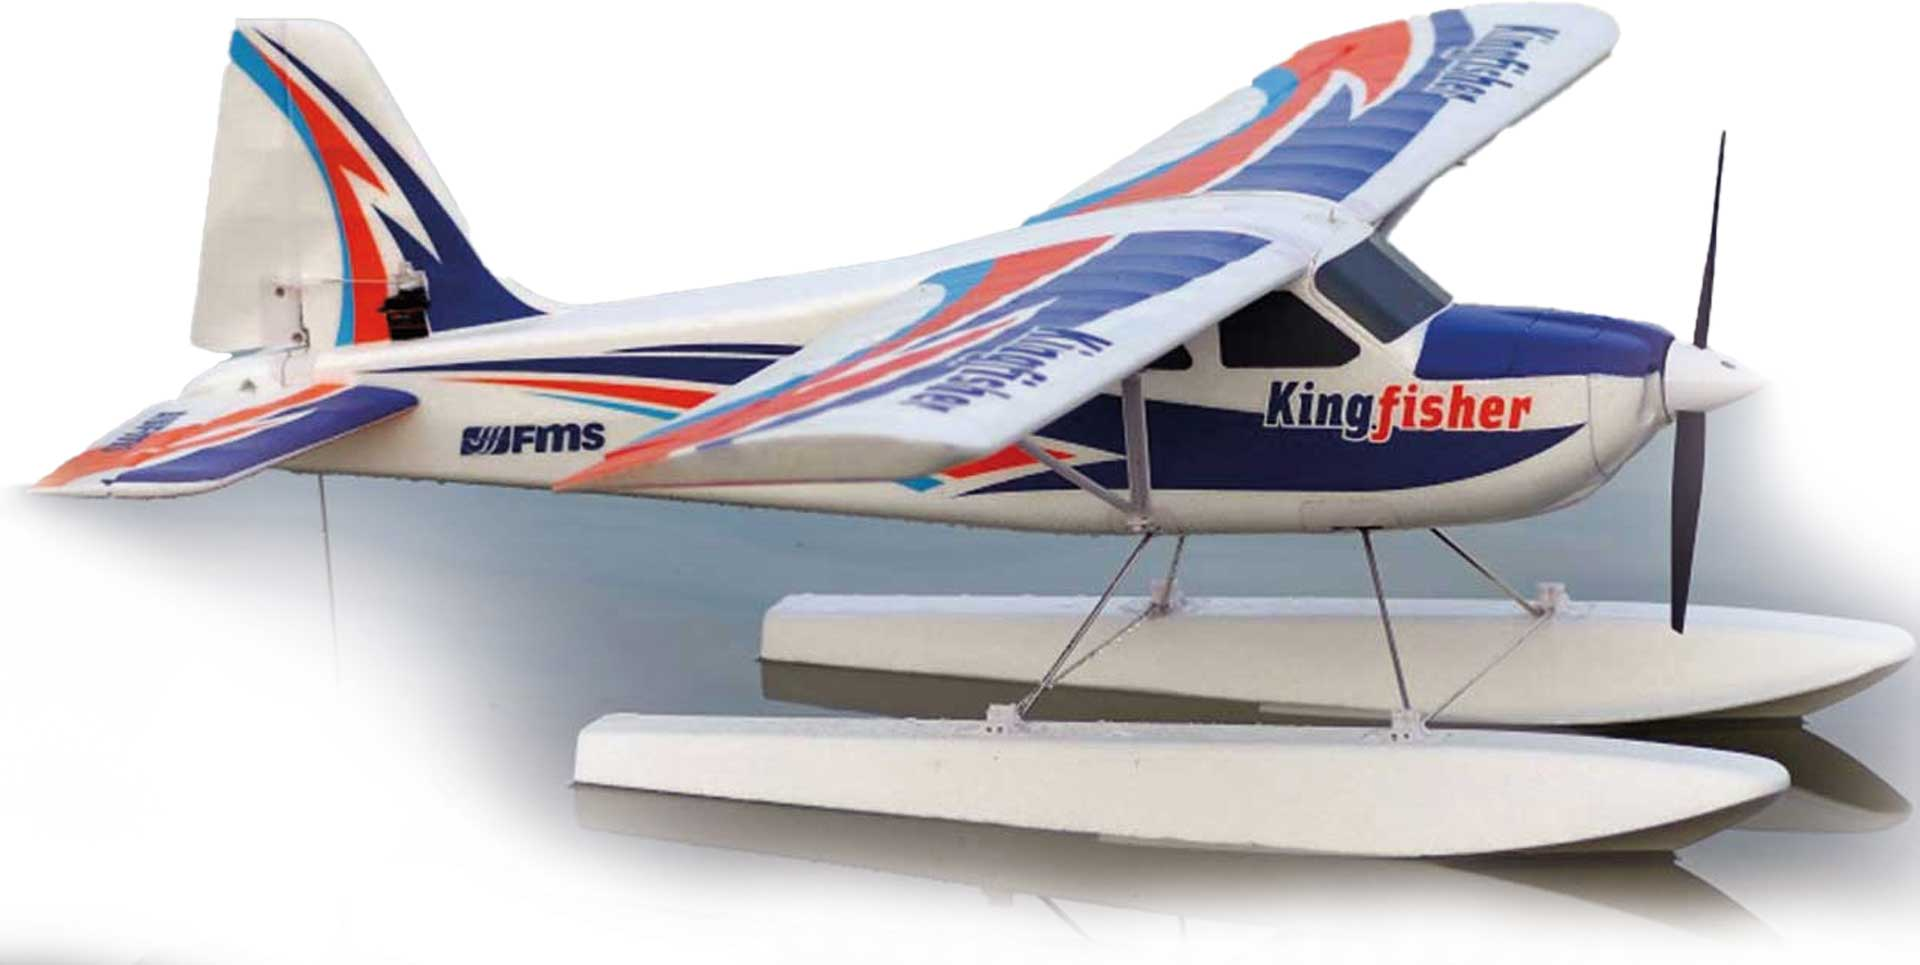 FMS Kingfisher Trainer PNP incl. Schwimmer & Ski s - 140 cm Combo incl. Reflex Gyro Syst